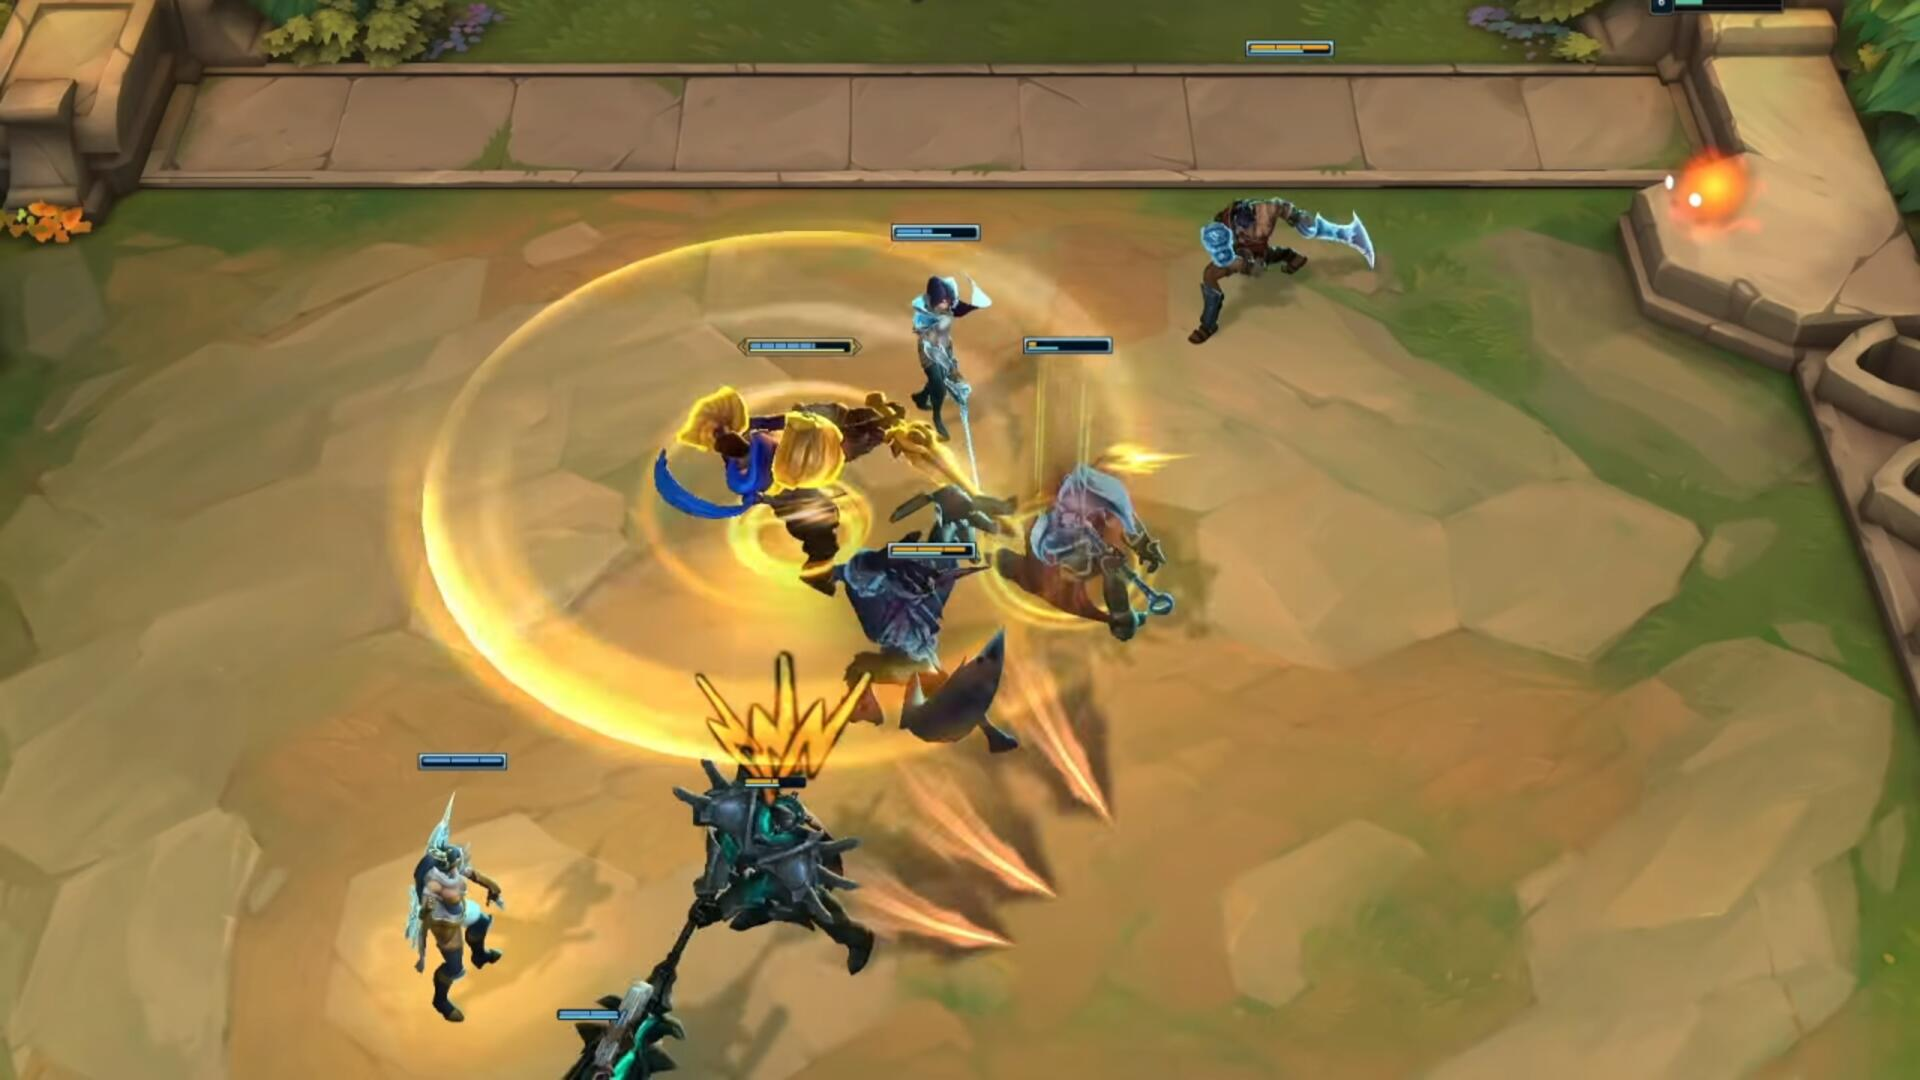 Twitch Plays Teamfight Tactics Takes Out Quite A Few Unsuspecting Human Players